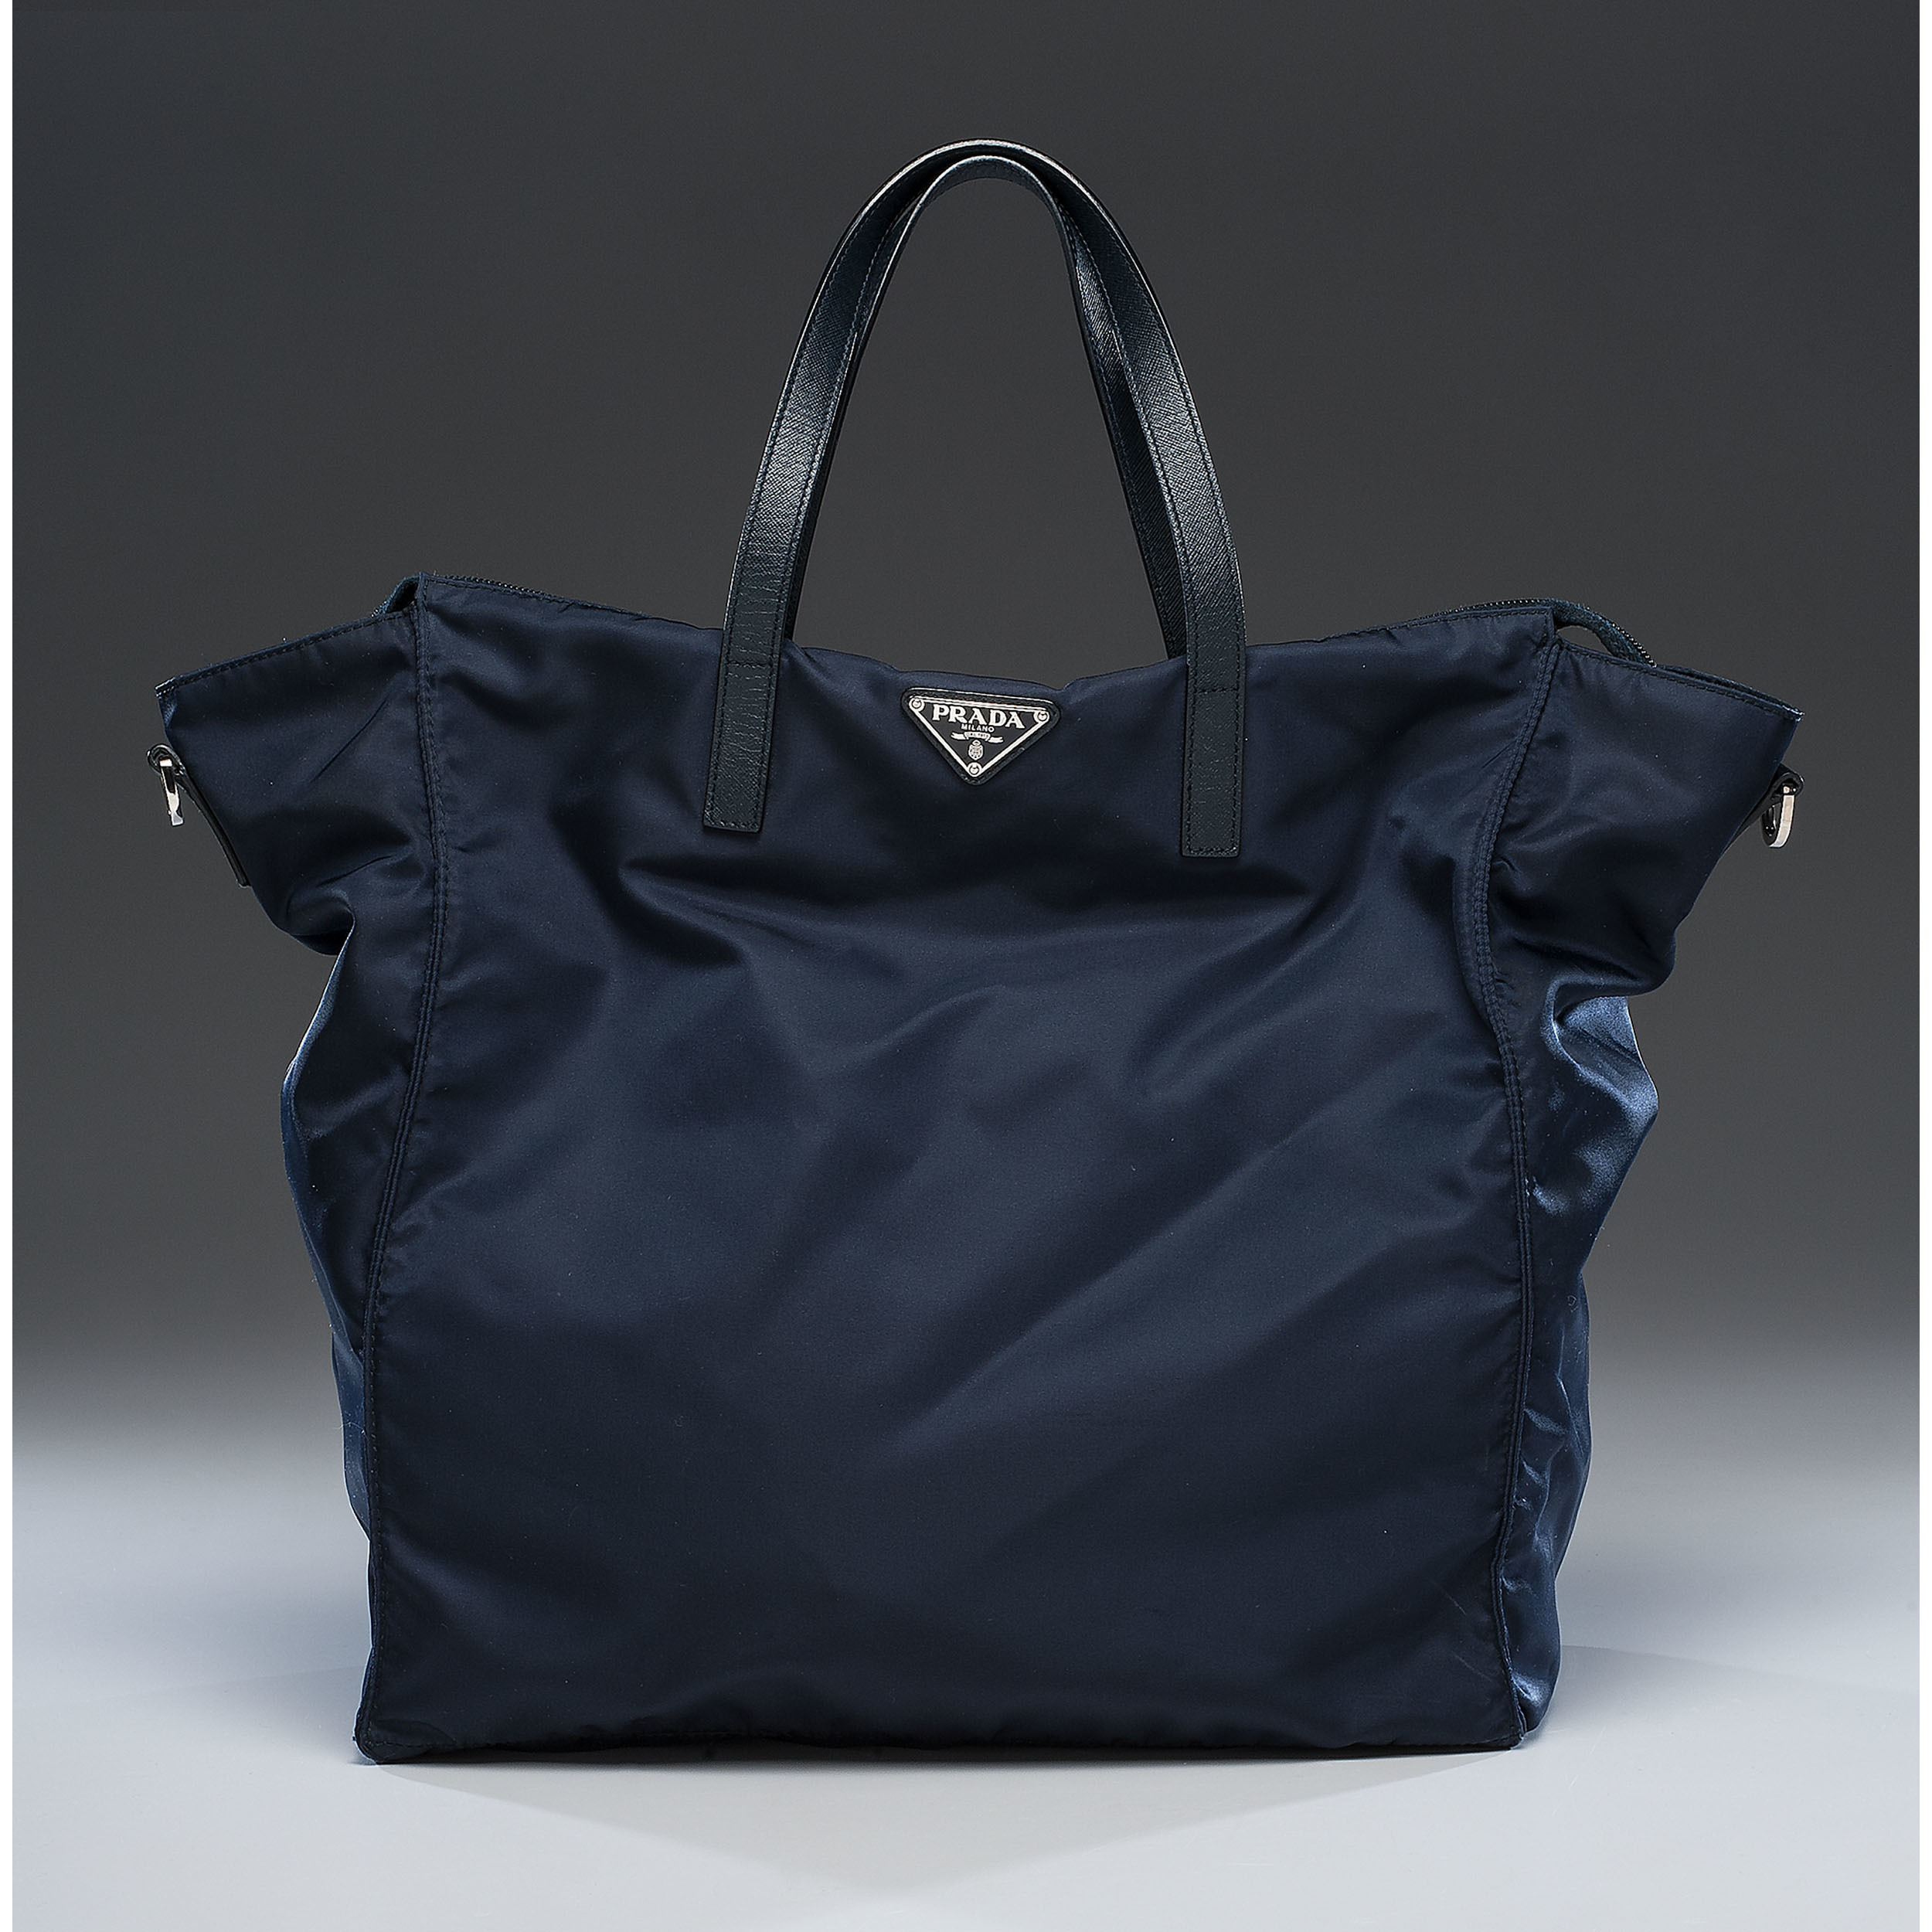 9e5f16304922 ... australia prada navy nylon zip tote bag with strap b105b 60820